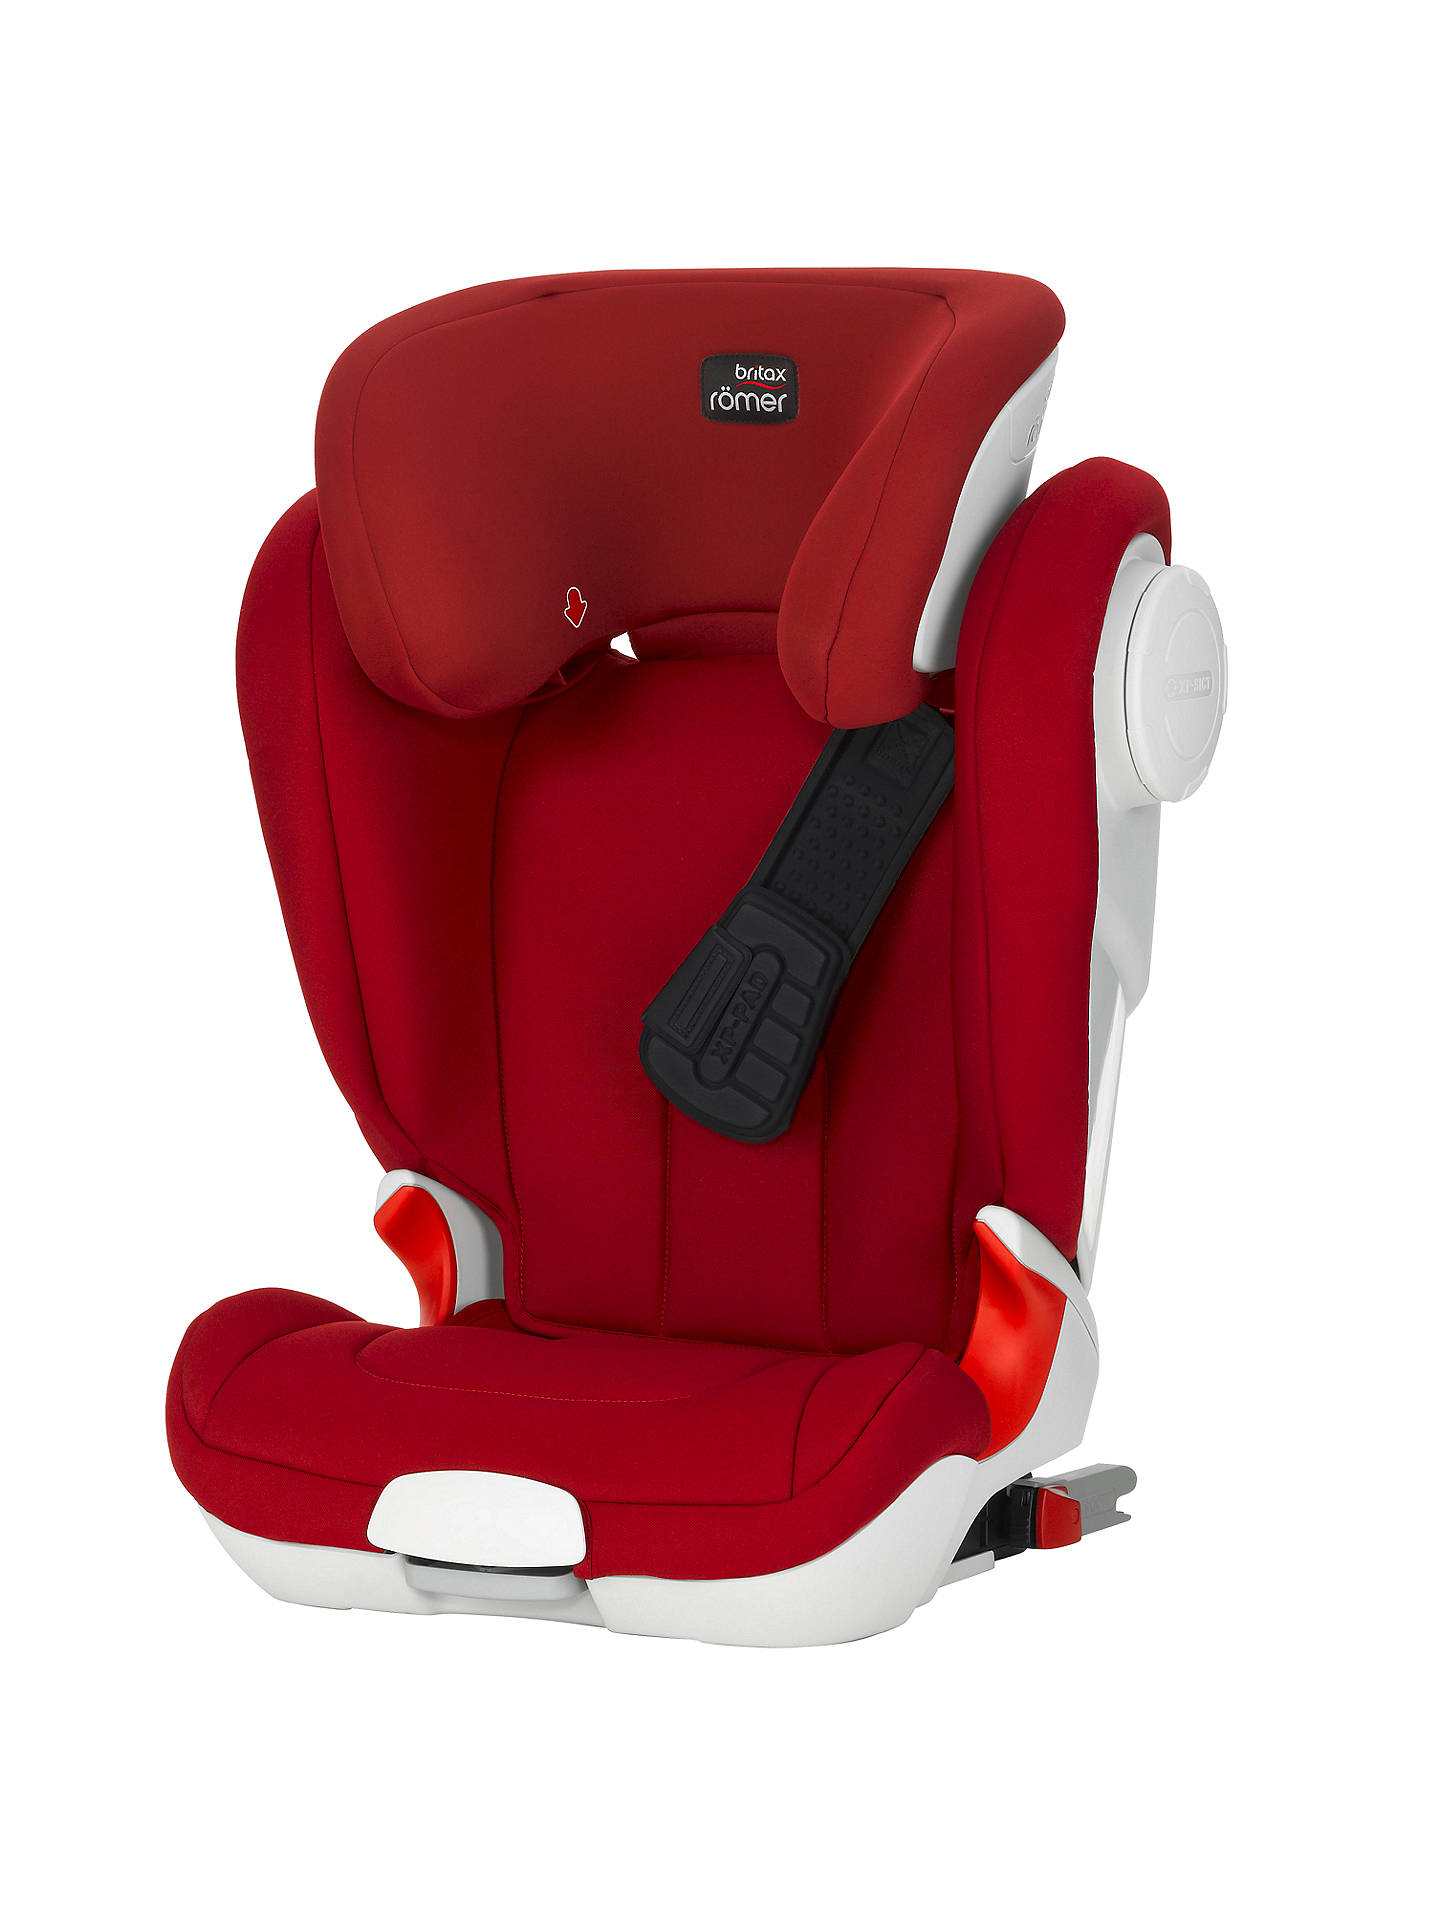 britax r mer kidfix xp sict group 2 3 car seat flame red at john lewis partners. Black Bedroom Furniture Sets. Home Design Ideas